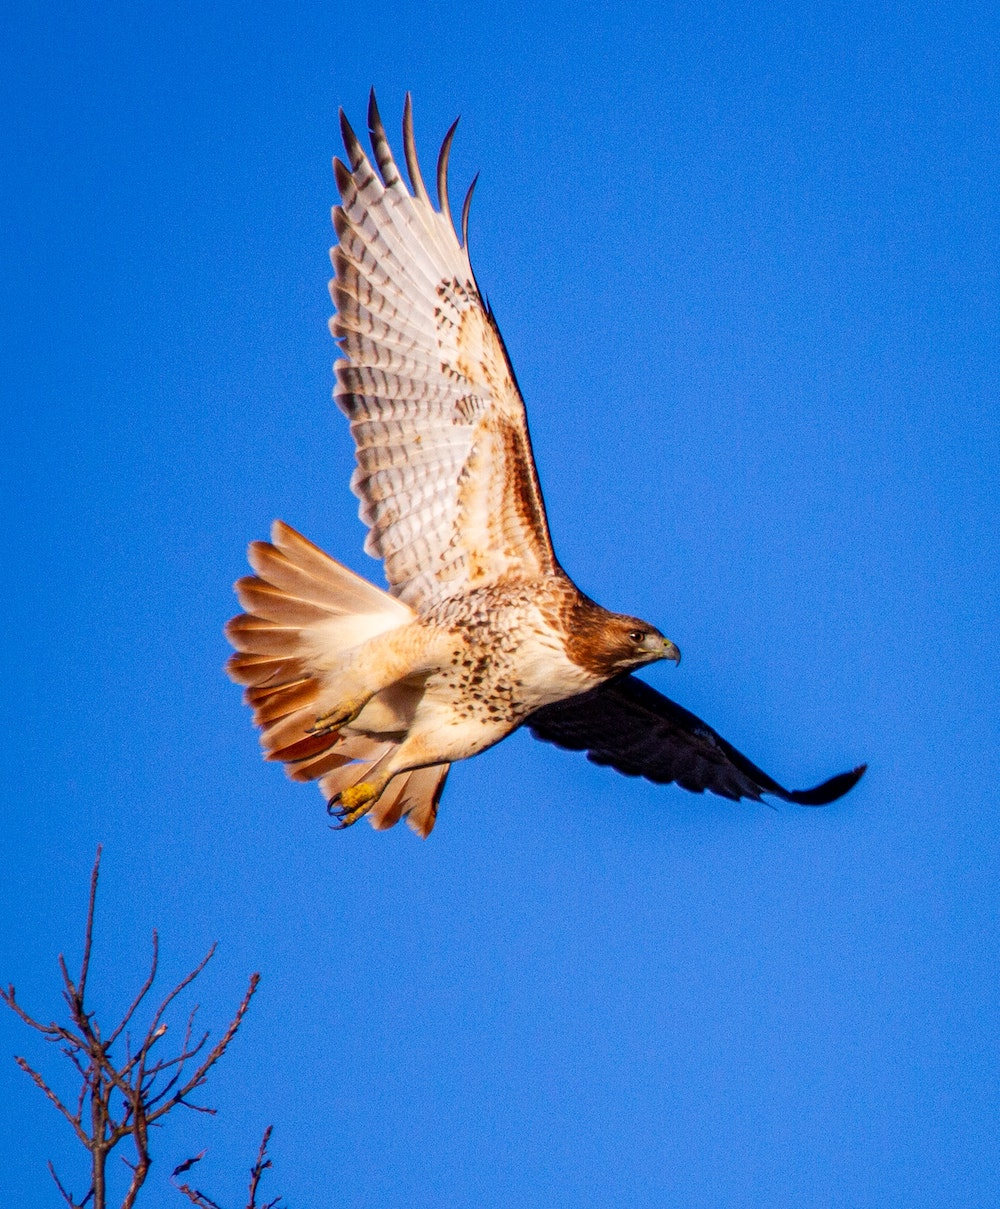 A hawk with brown speckles around its breast soars against a bright blue sky.